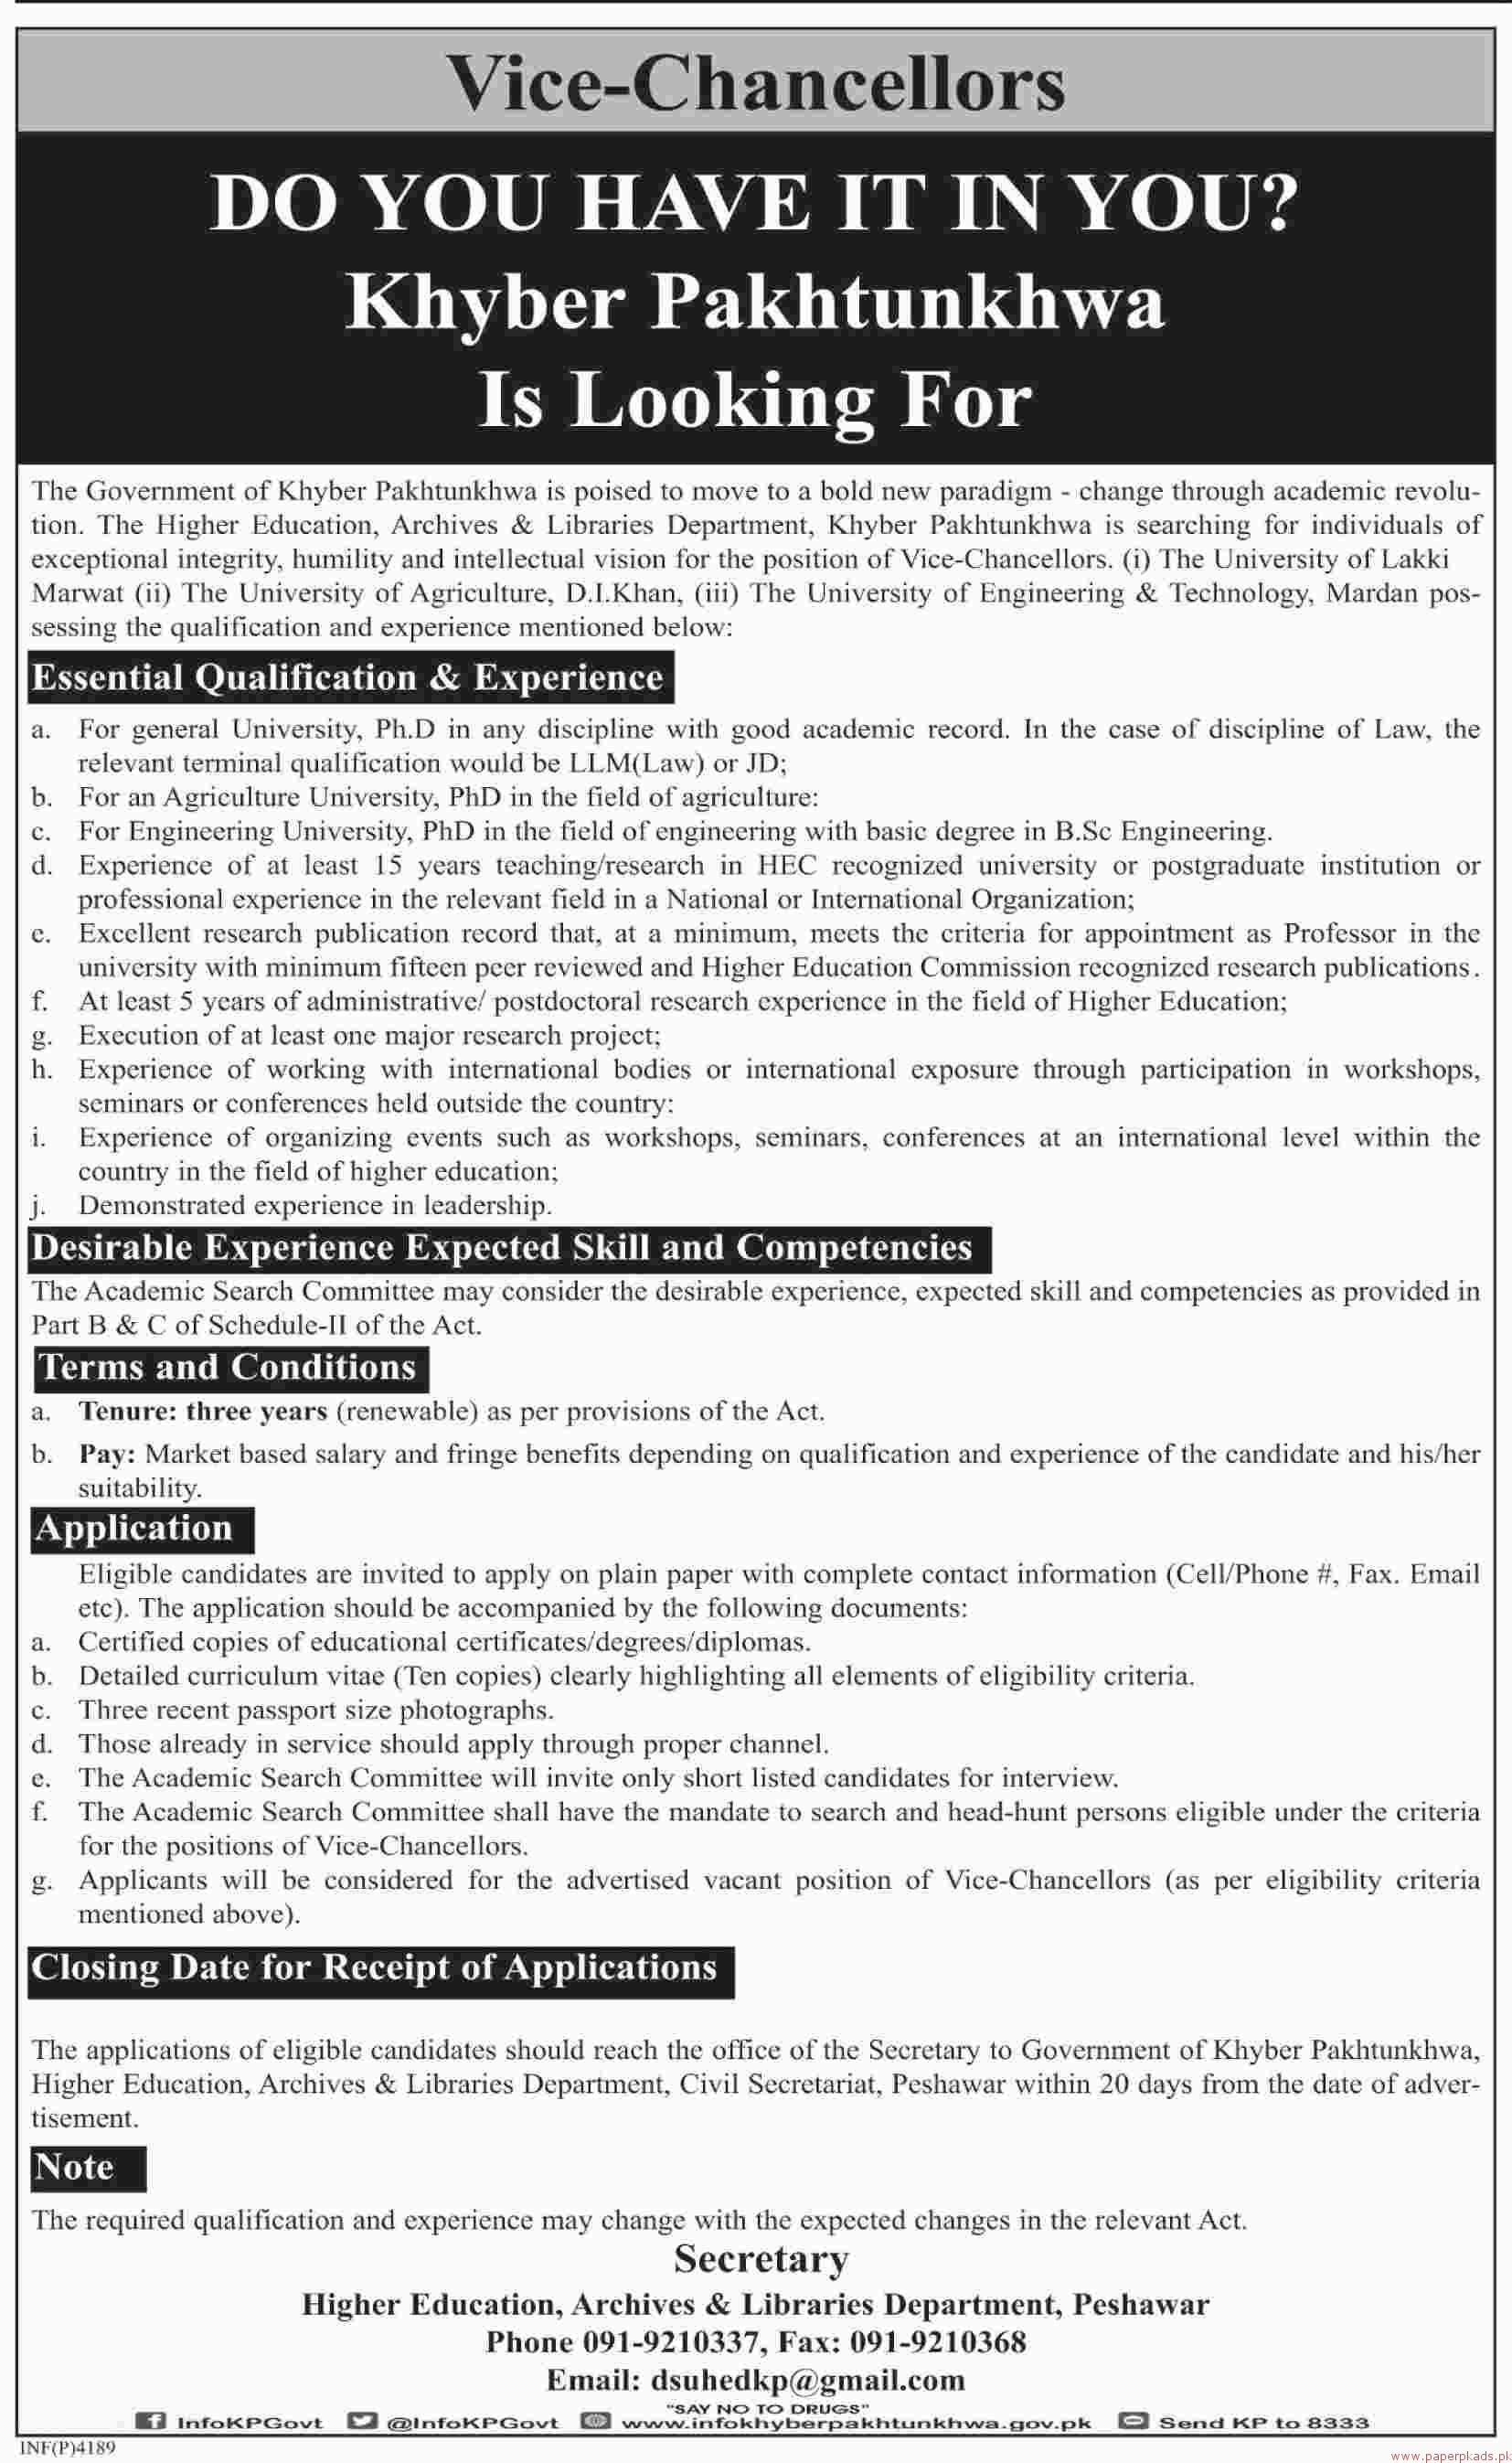 Higher Education Archives & Libraries Department Jobs 2018 Latest